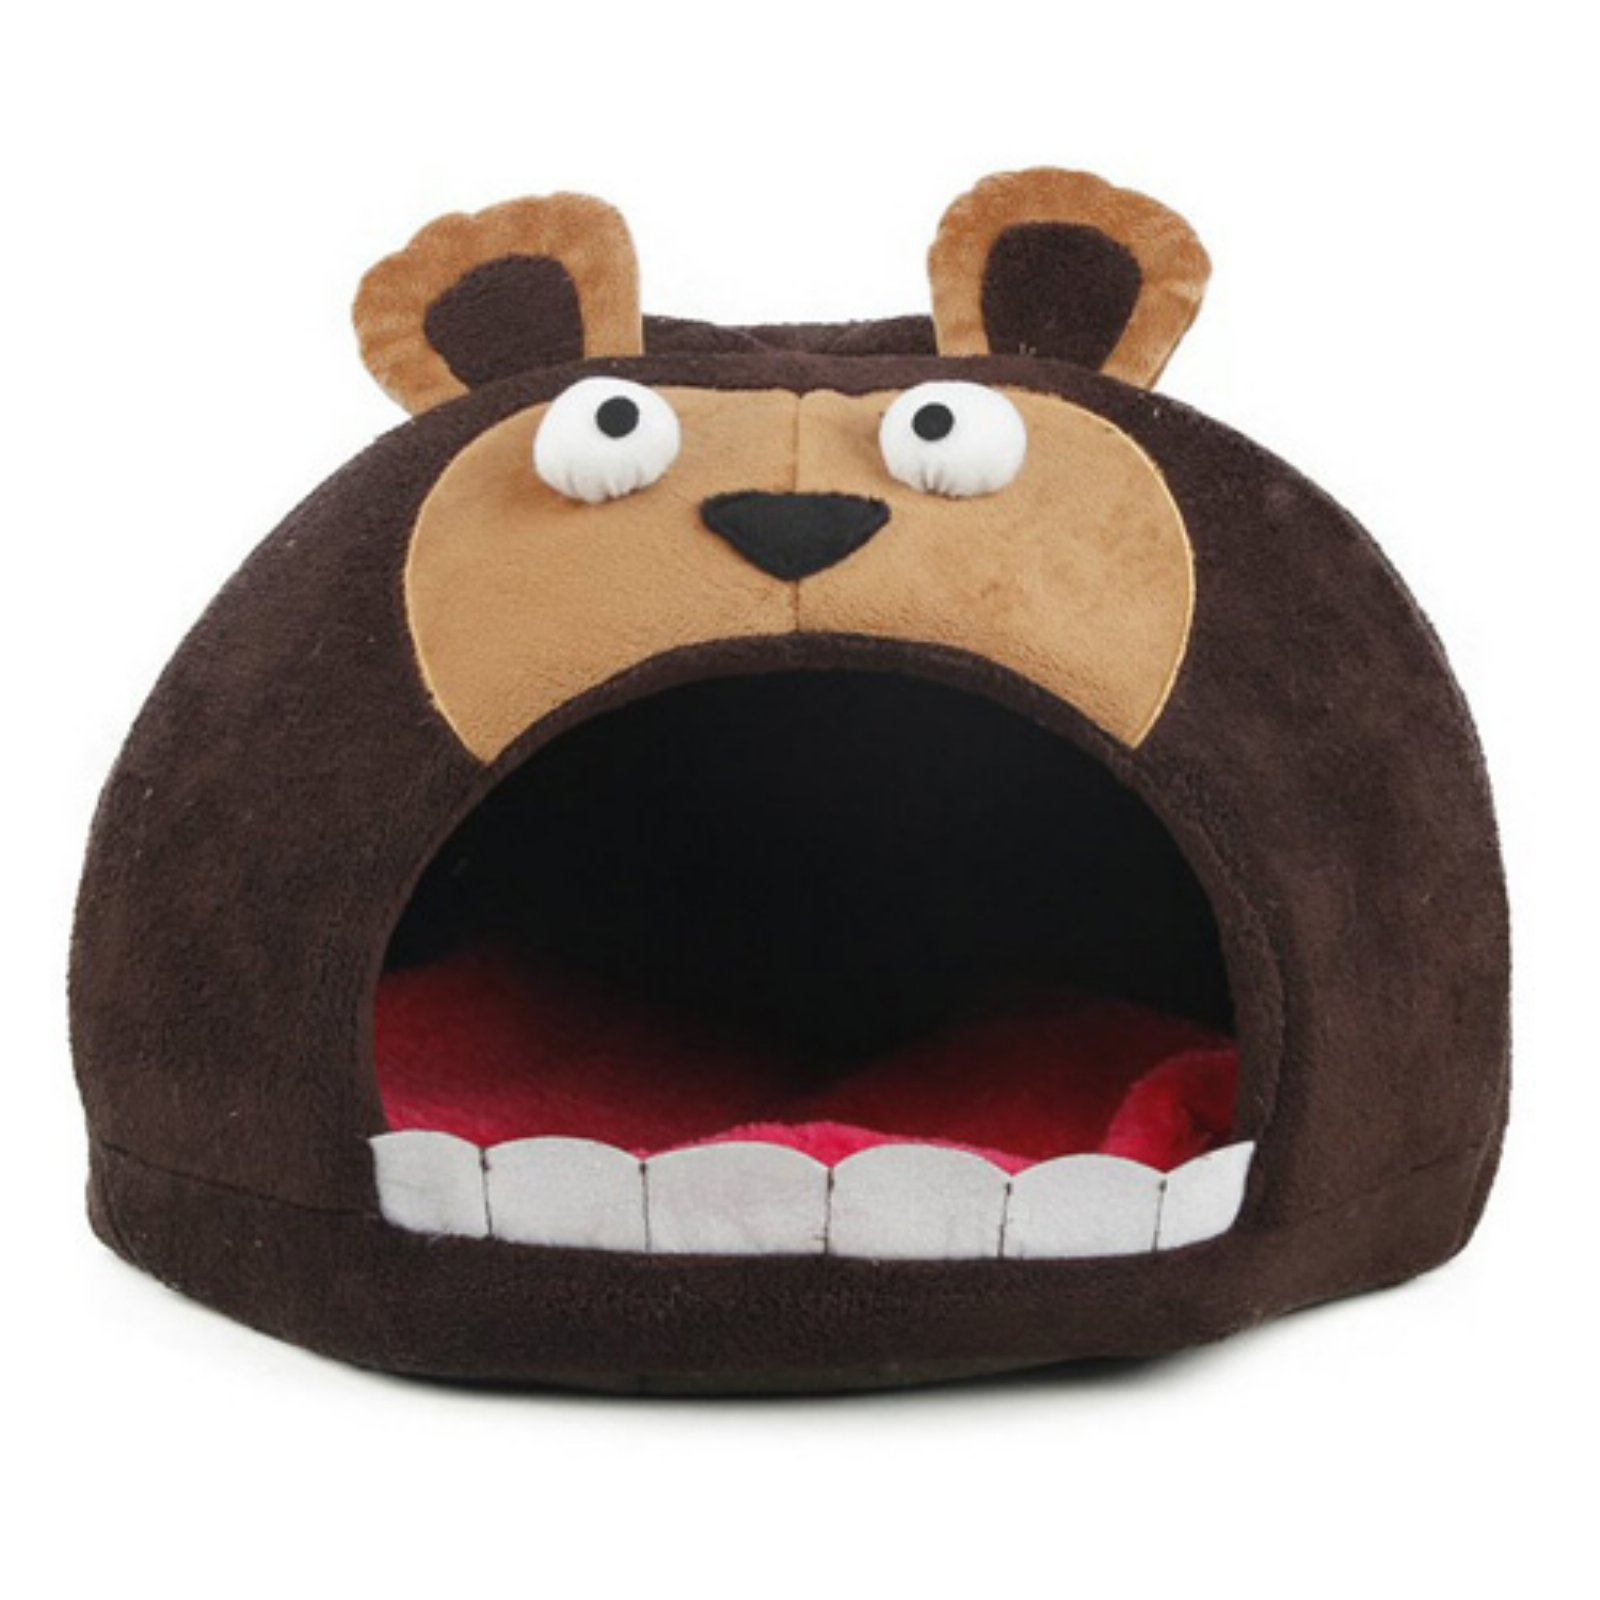 Pet Life Roar Bear Snuggle Plush Polar Fleece Pet Bed